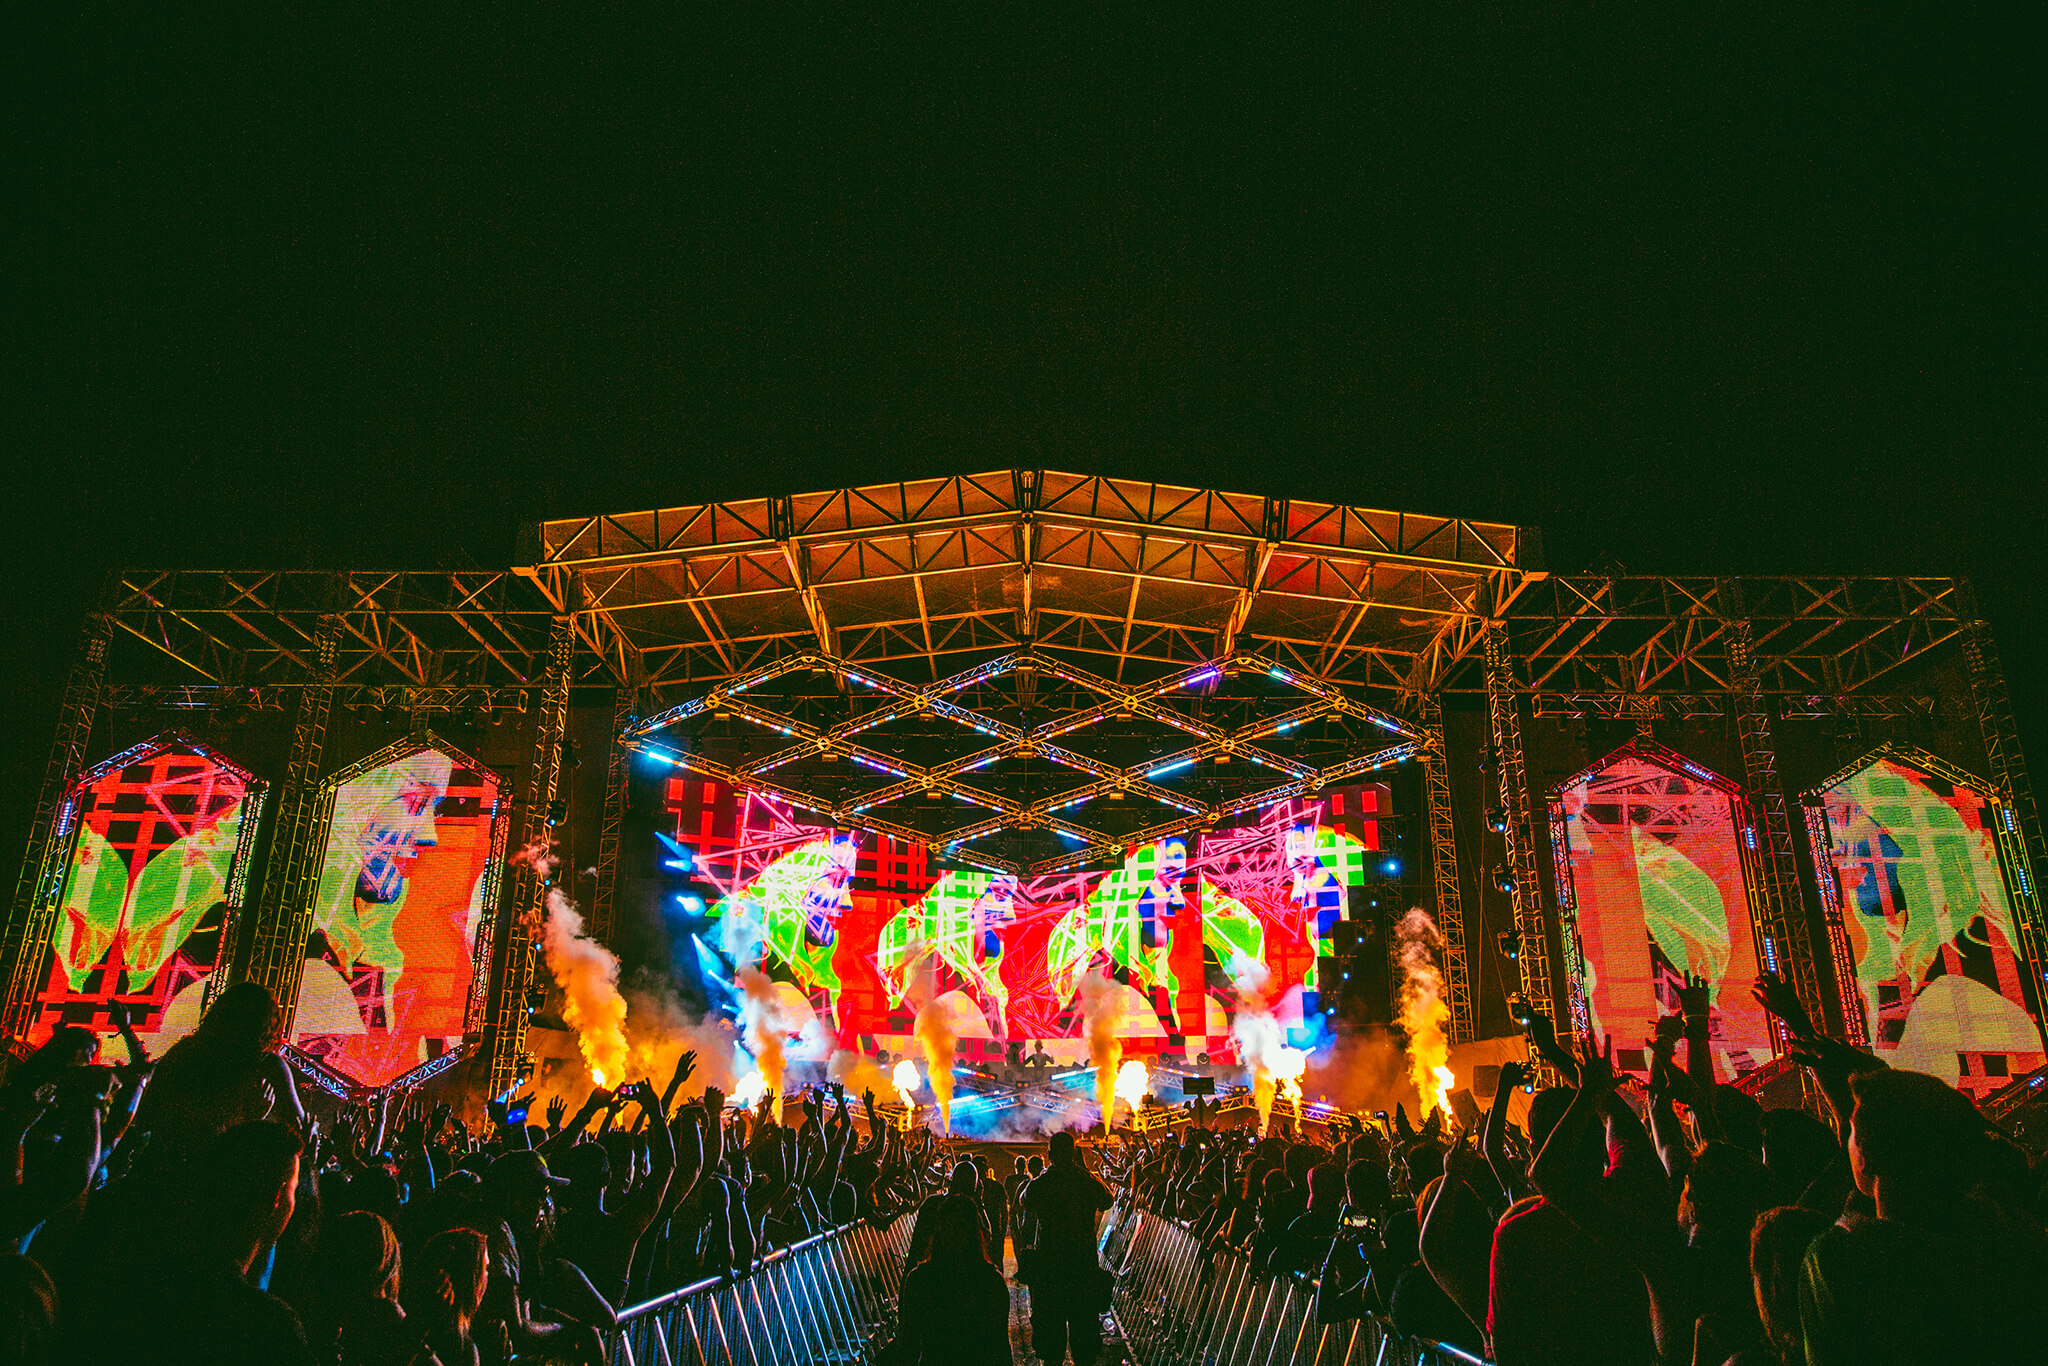 Main stage at Sun City Music Festival 2015.